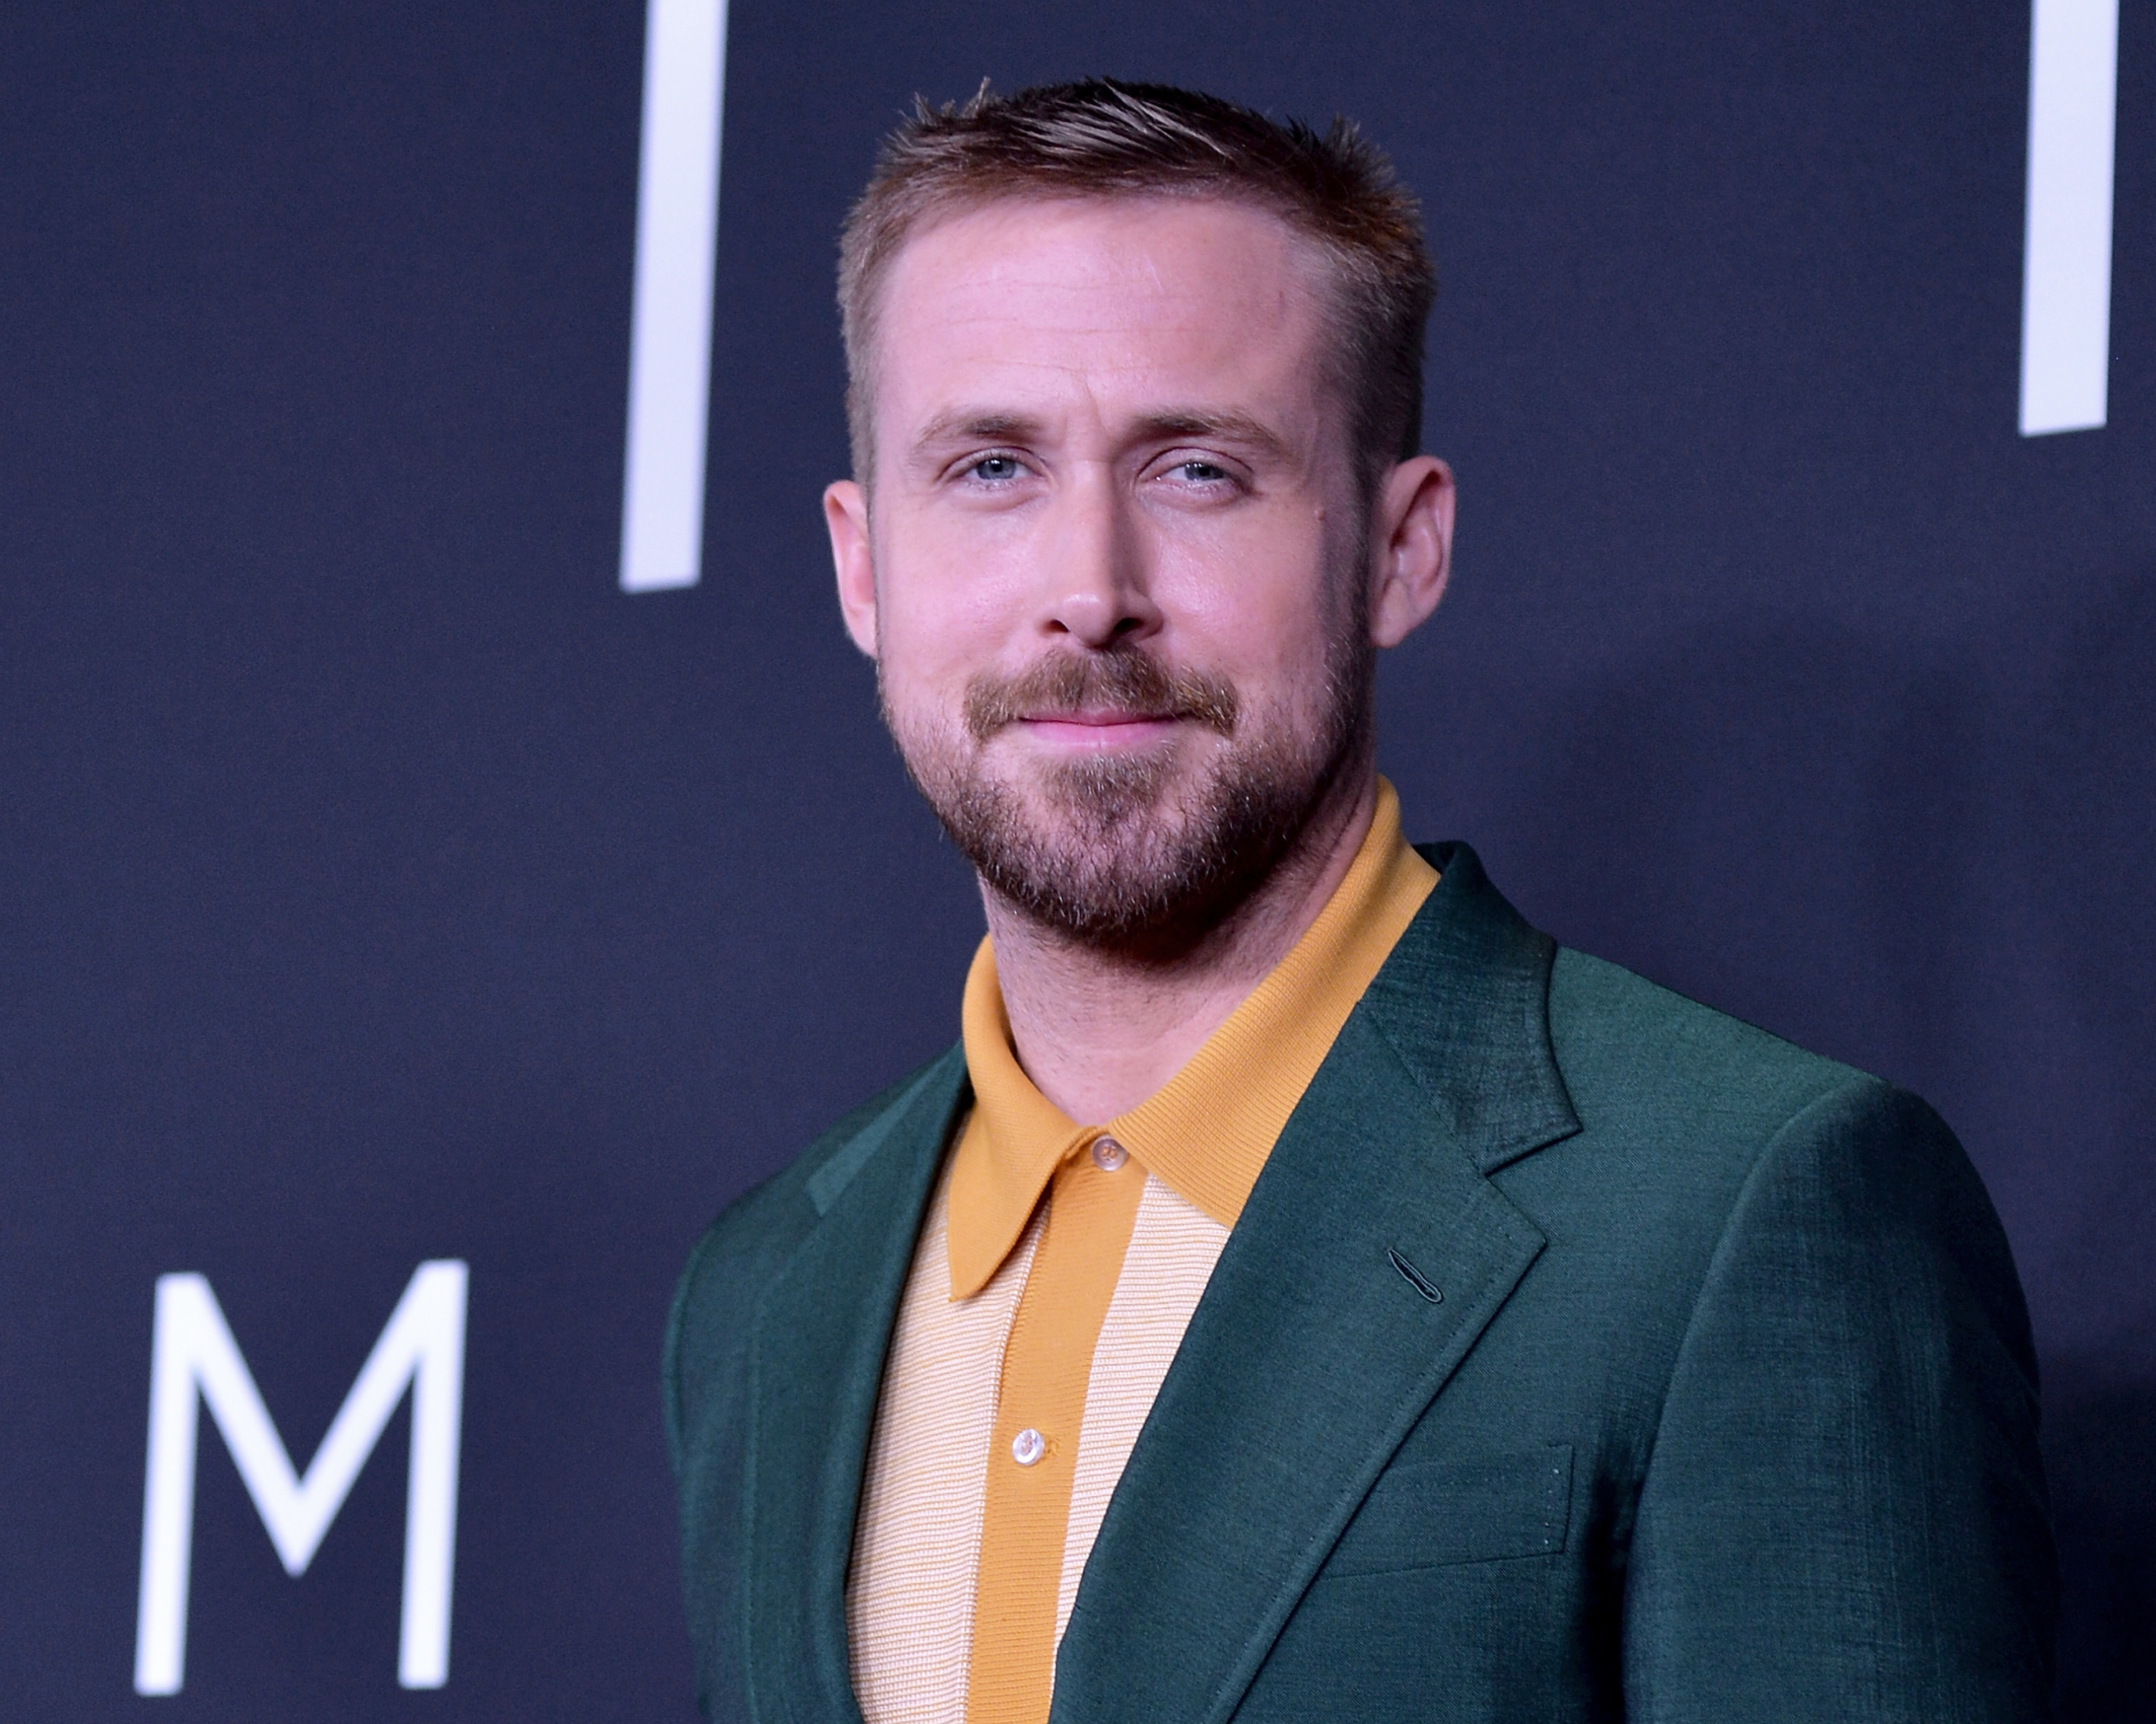 """Ryan Gosling attends the """"First Man"""" premiere at the National Air and Space Museum on October 4, 2018 in Washington, DC."""